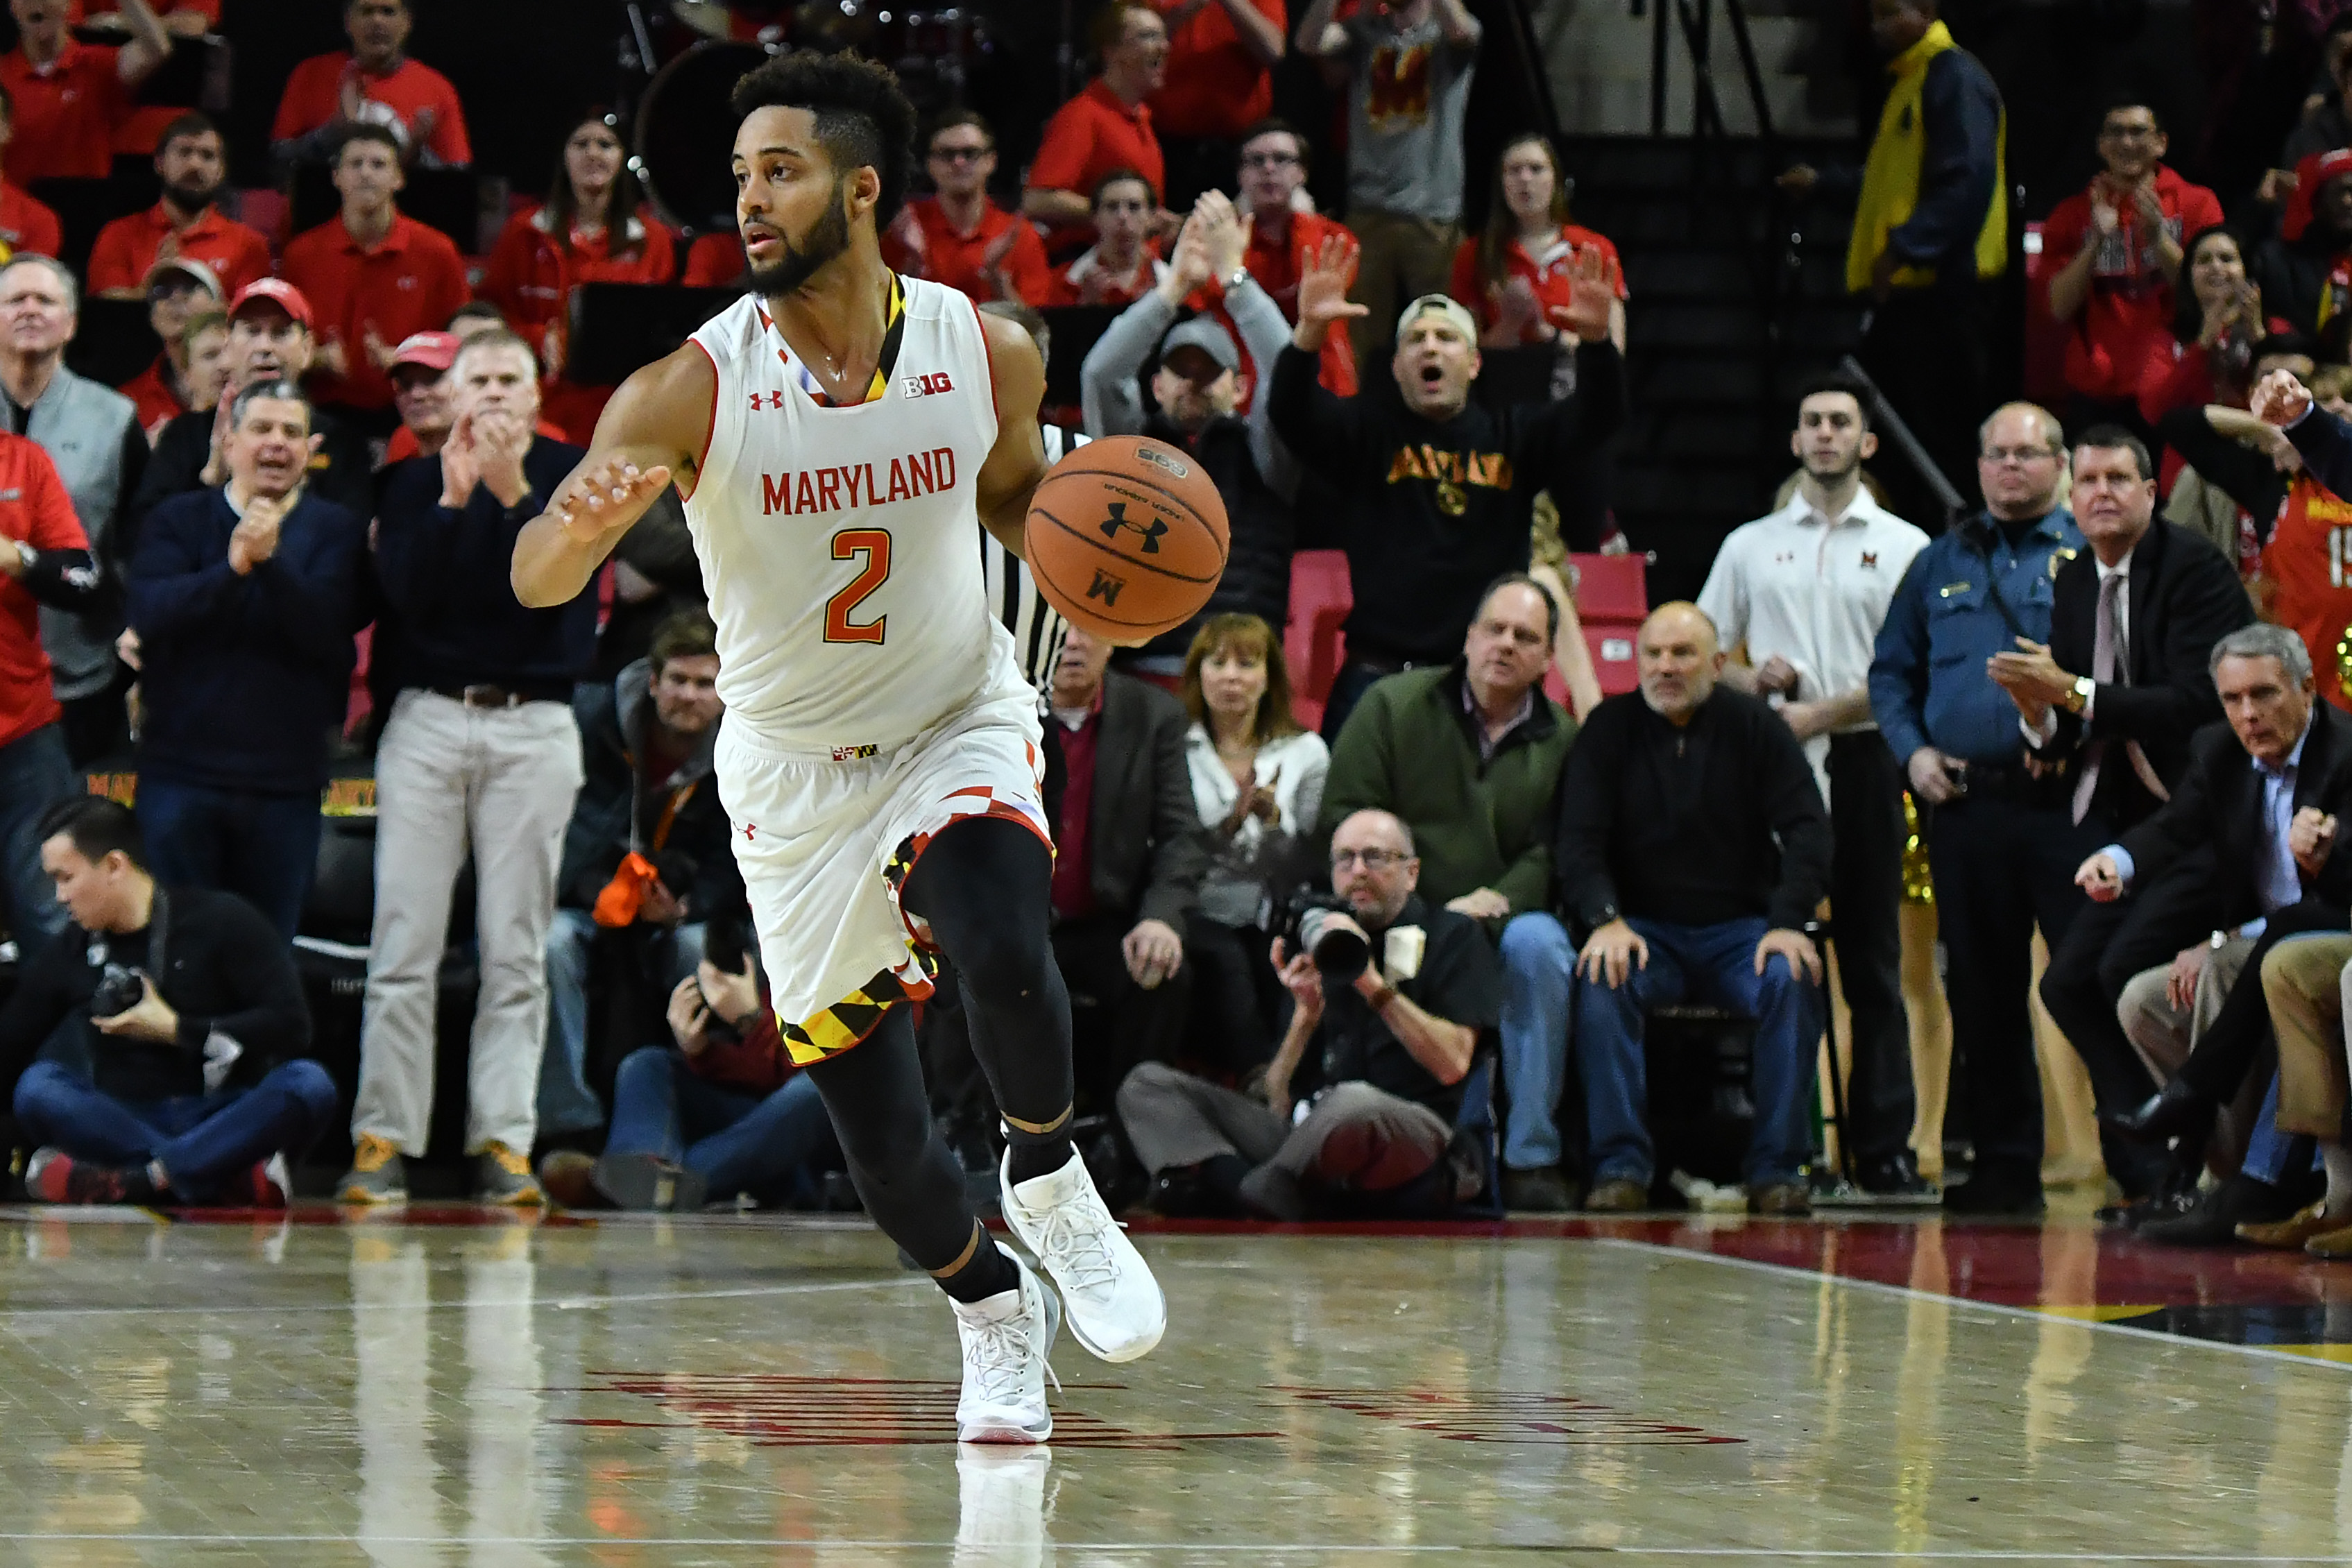 Maryland Basketball: Terps hit the road against young Iowa team